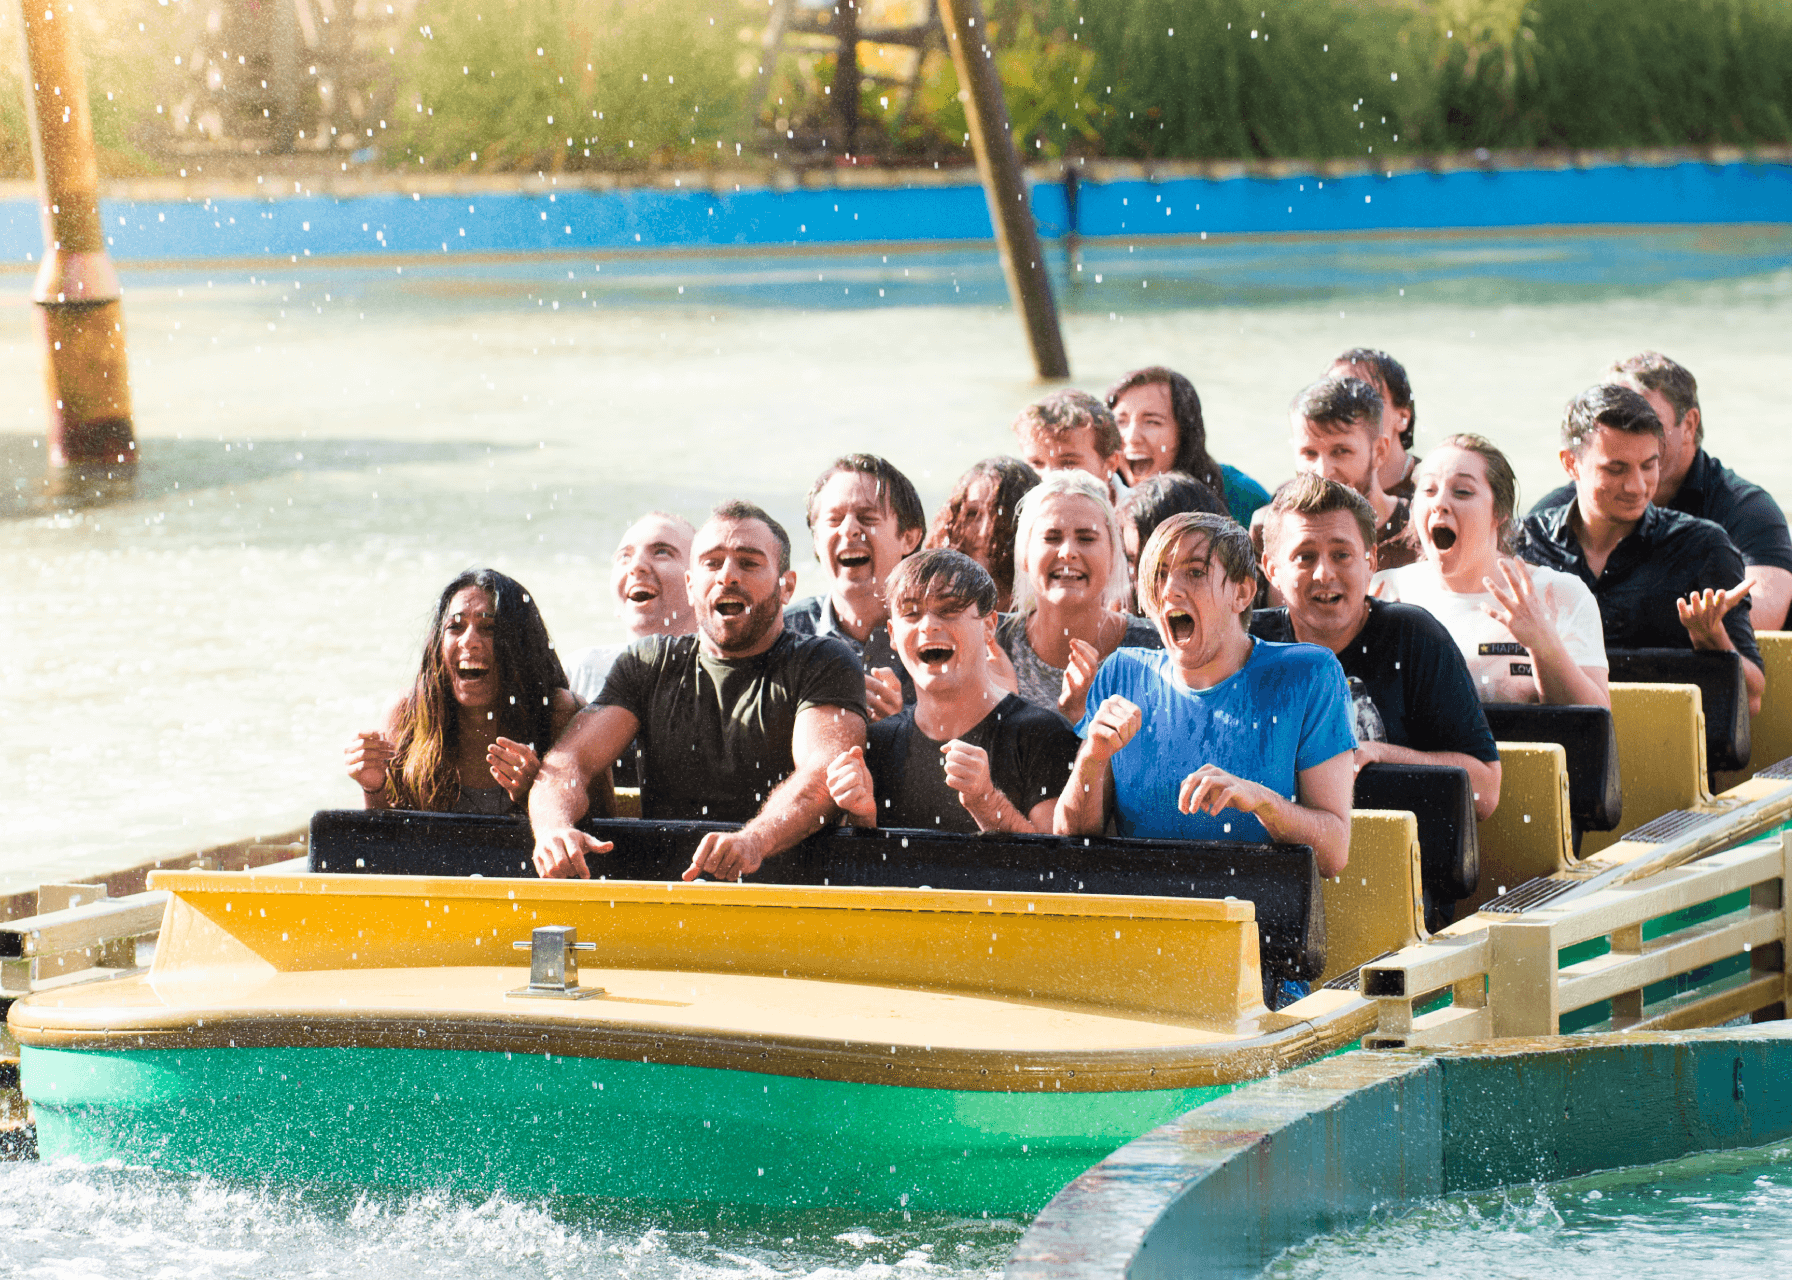 Tidal Wave Water Ride Soaking Wet Guests Closeup